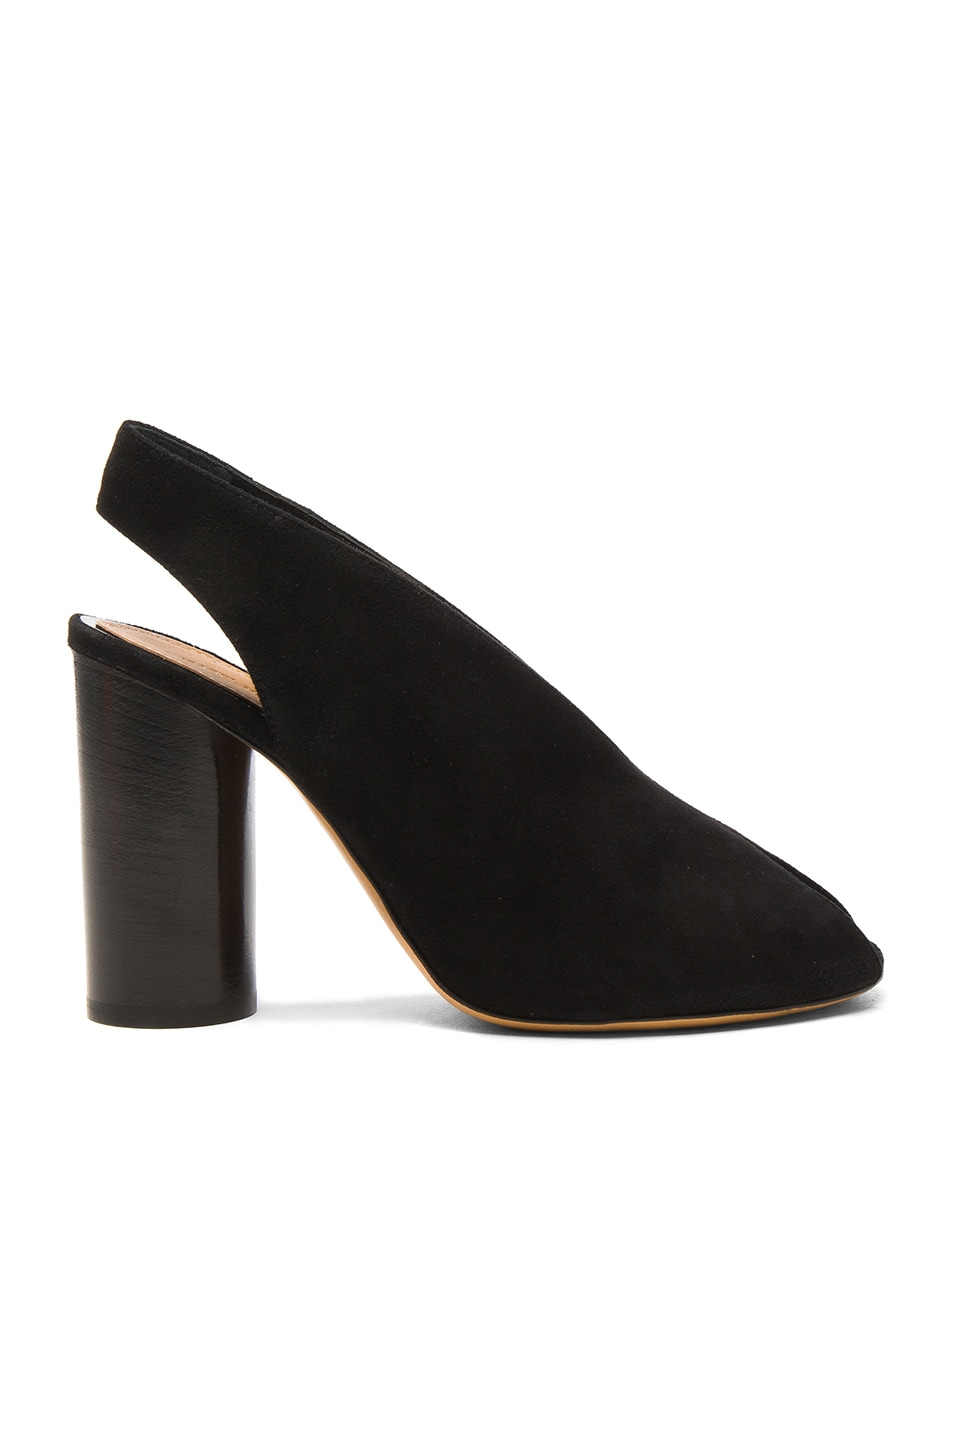 Image 1 of Isabel Marant Suede Meirid Heels in Black